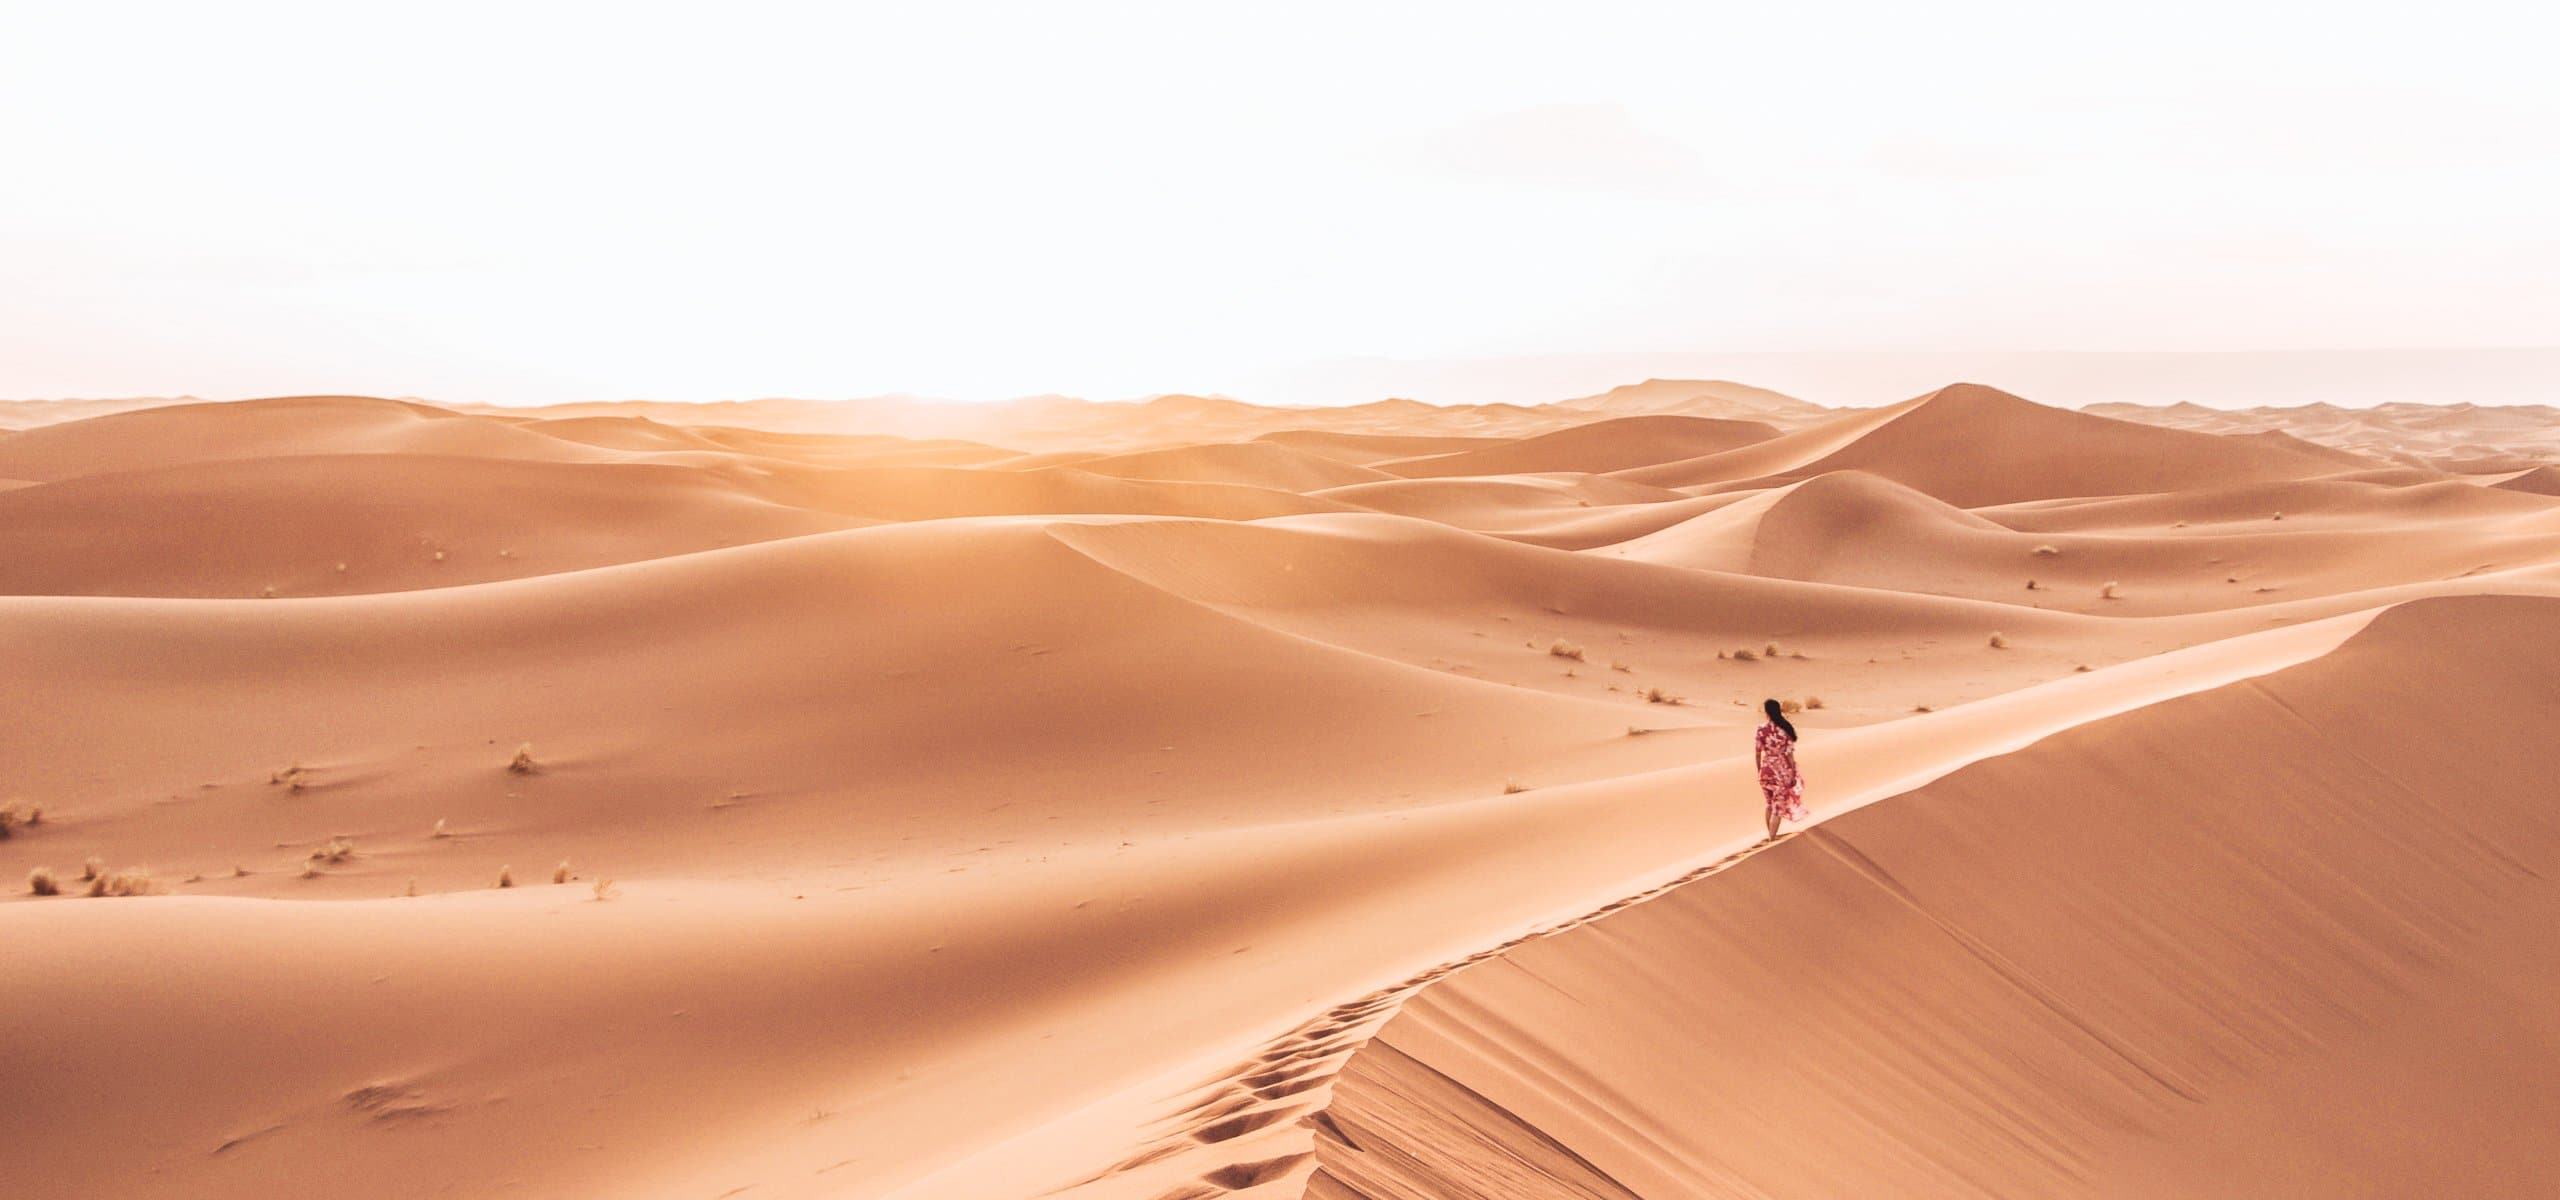 Jasmine walks along the peaks of a sand dune at sunset in the Sahara Desert, Morocco